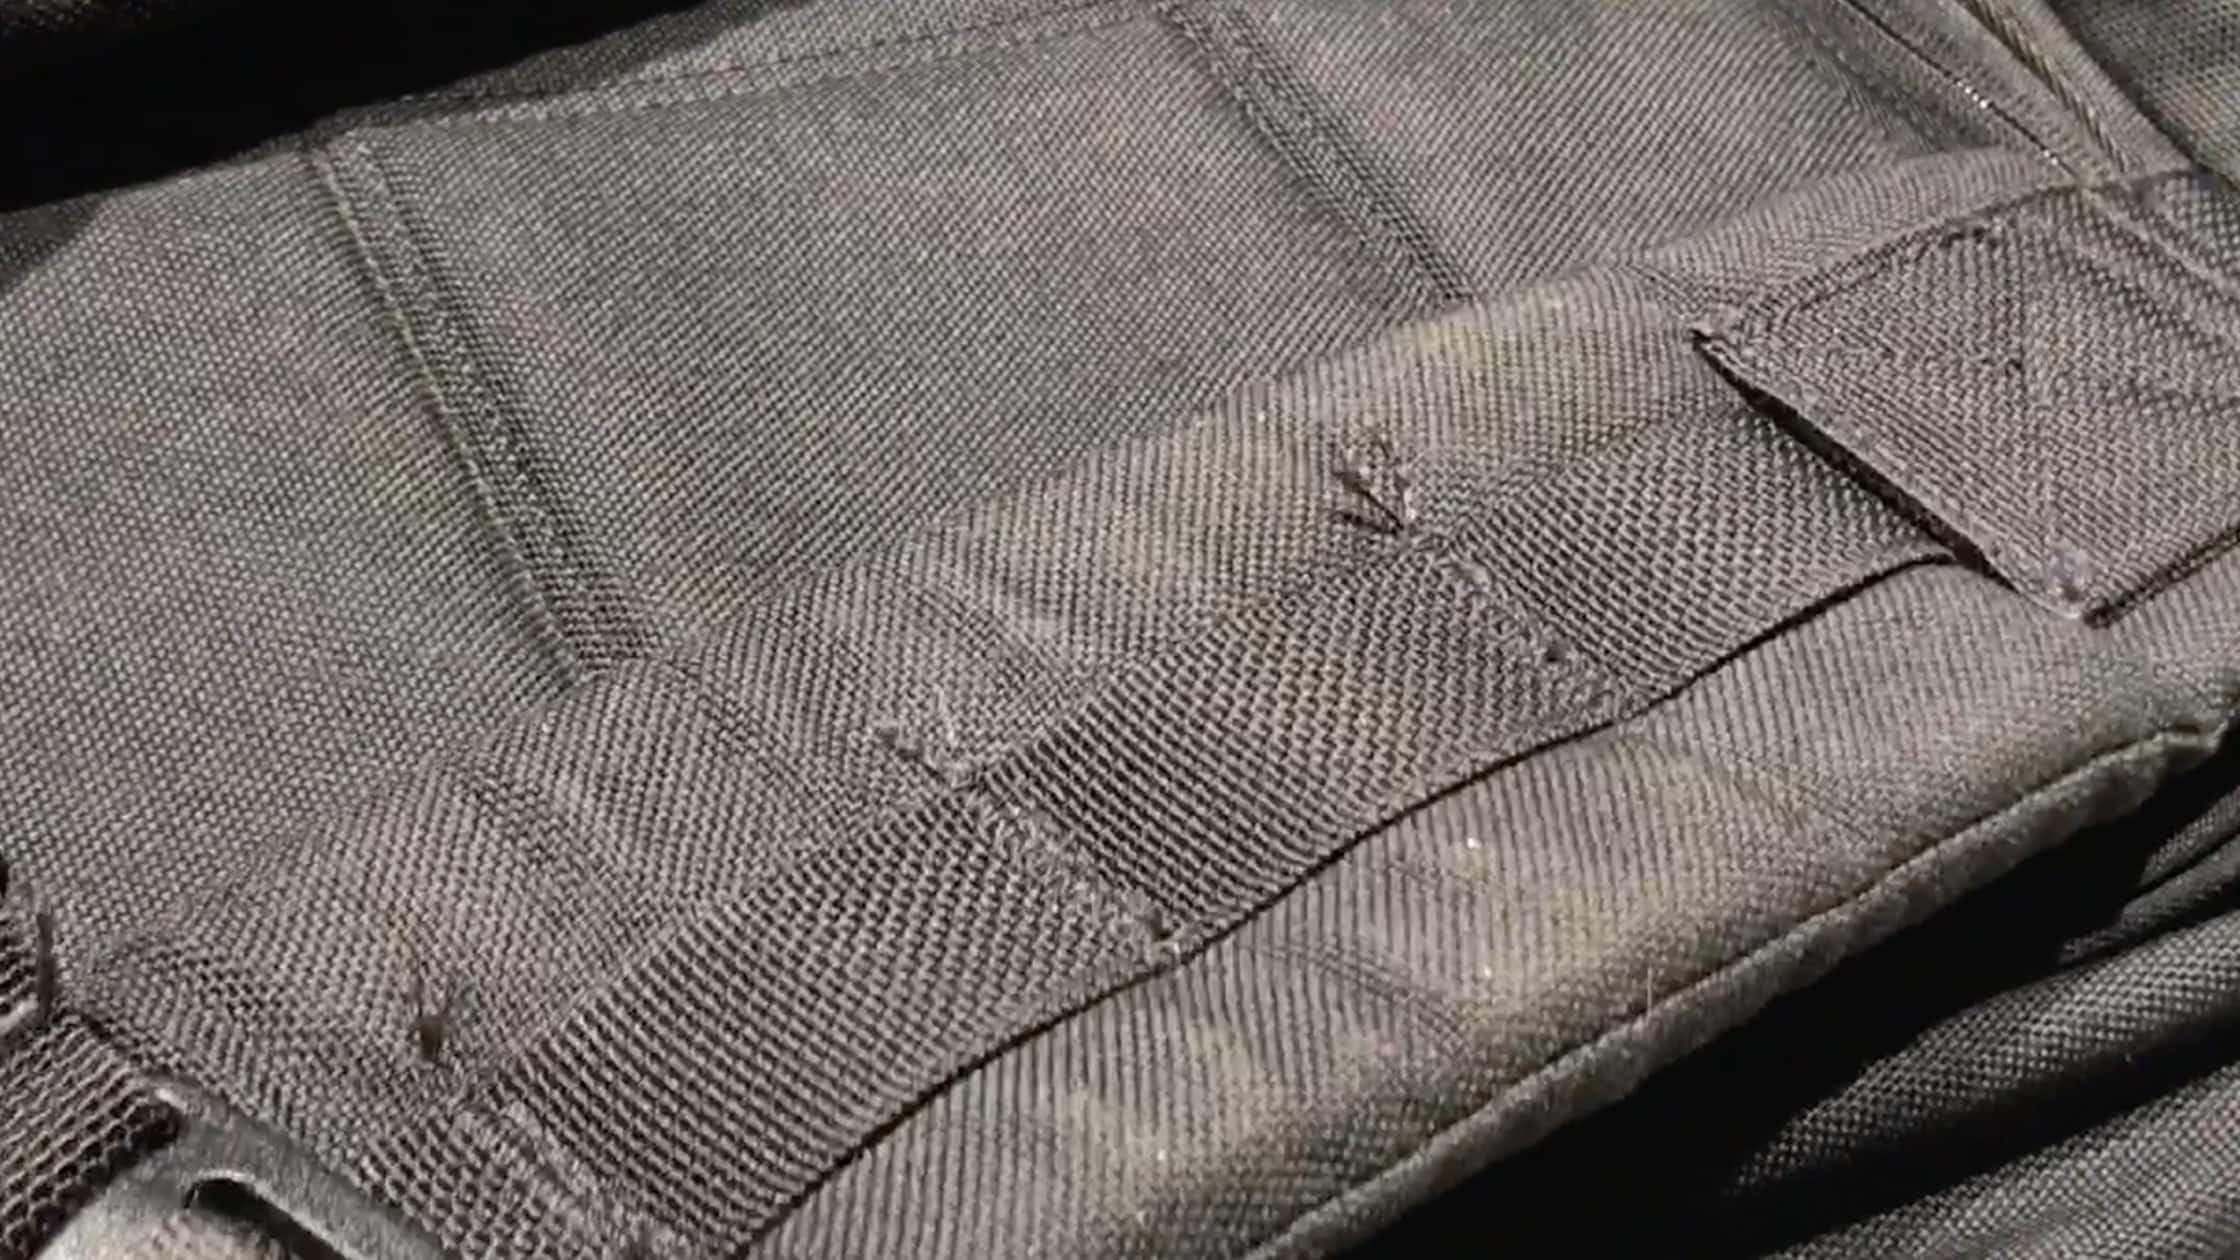 Frayed areas on the GORUCK GR2